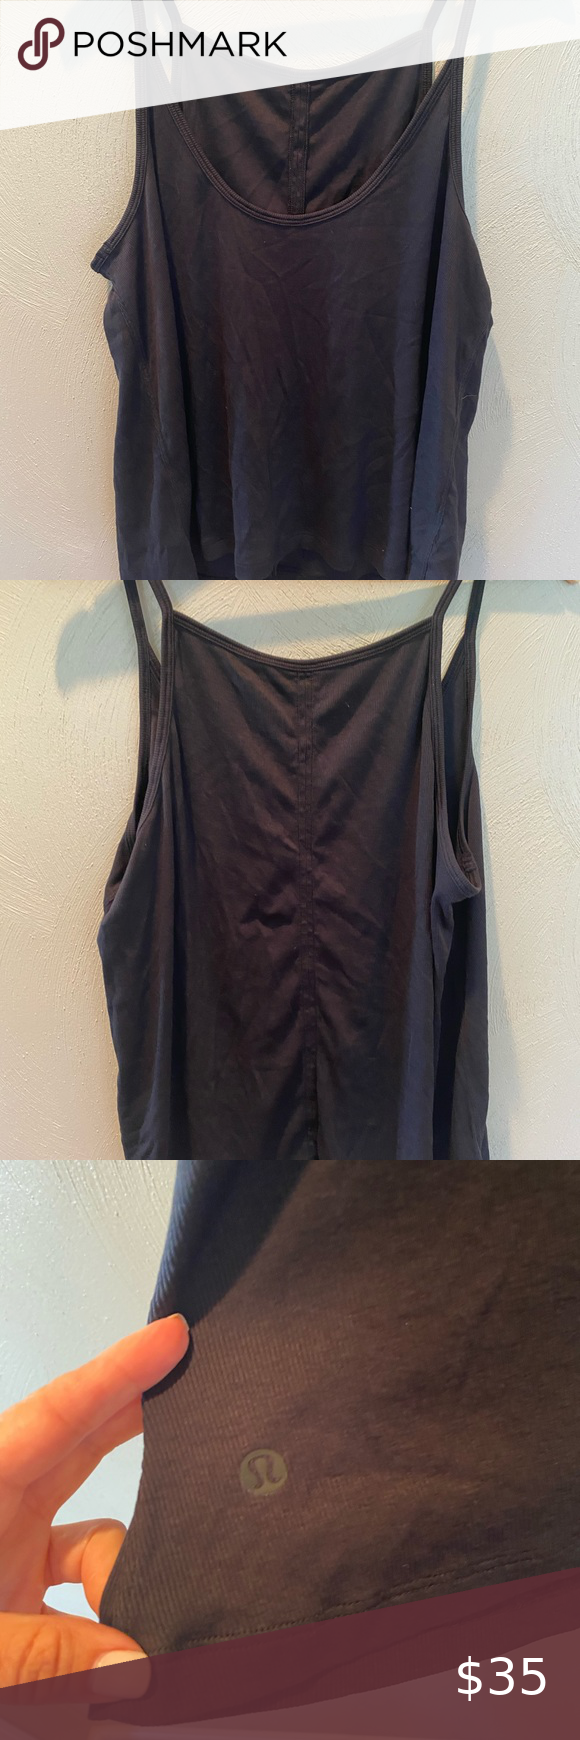 Lululemon back bend tank EUC